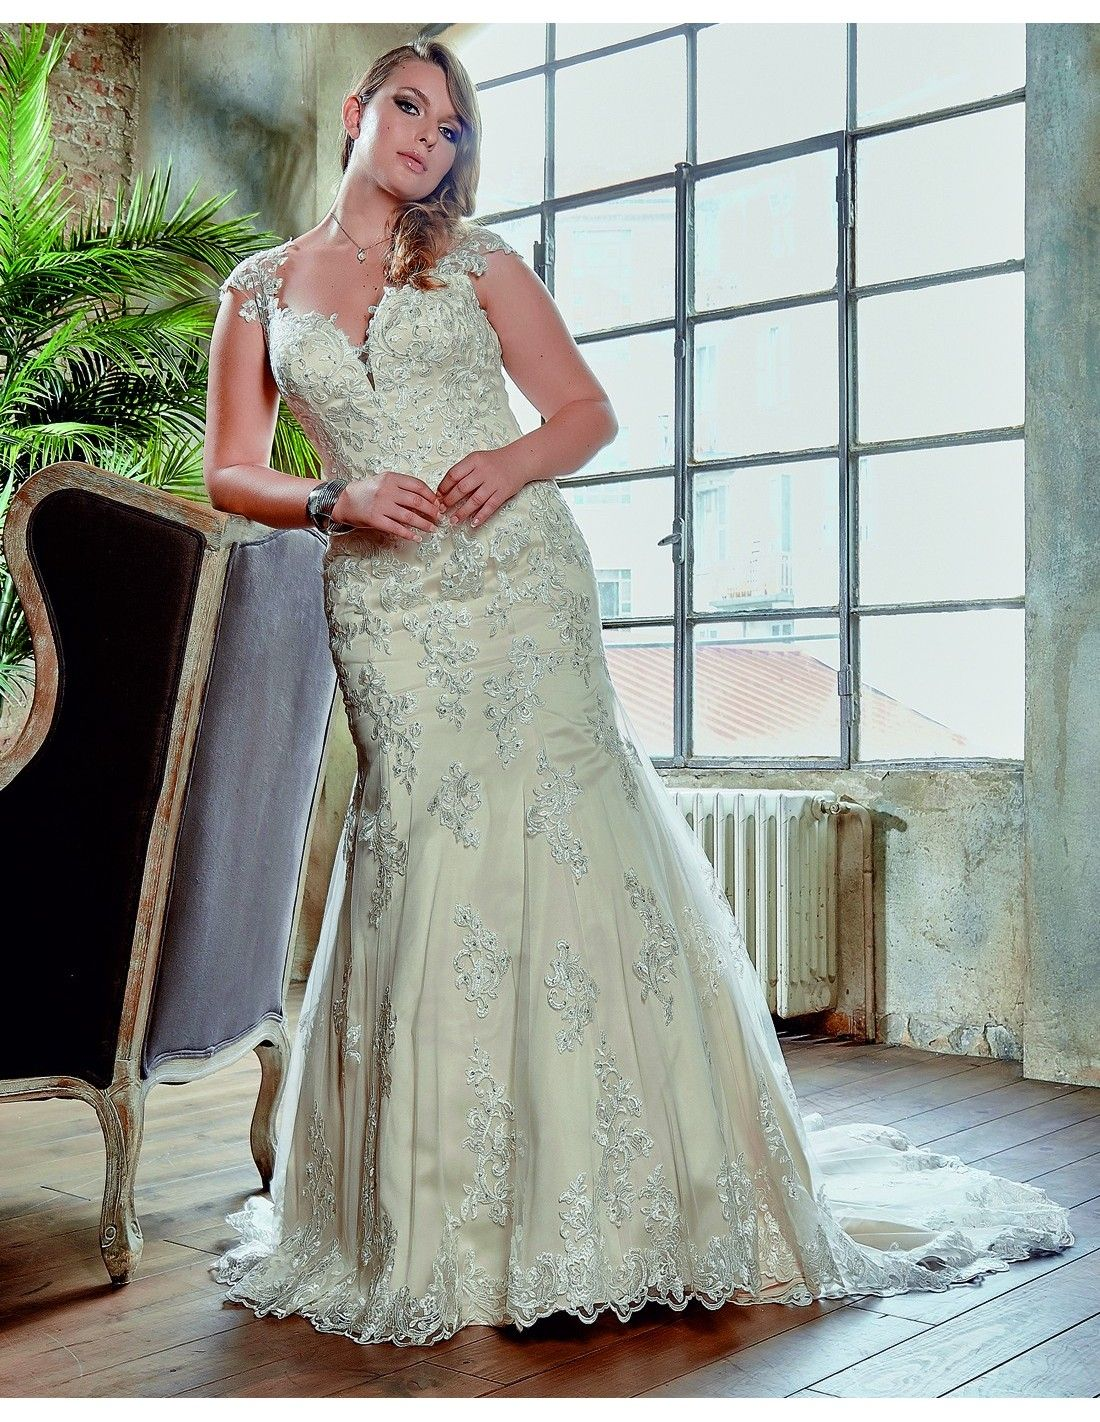 New lace fit n flare available at Spotlight Formal Wear! #SpotlightBridal